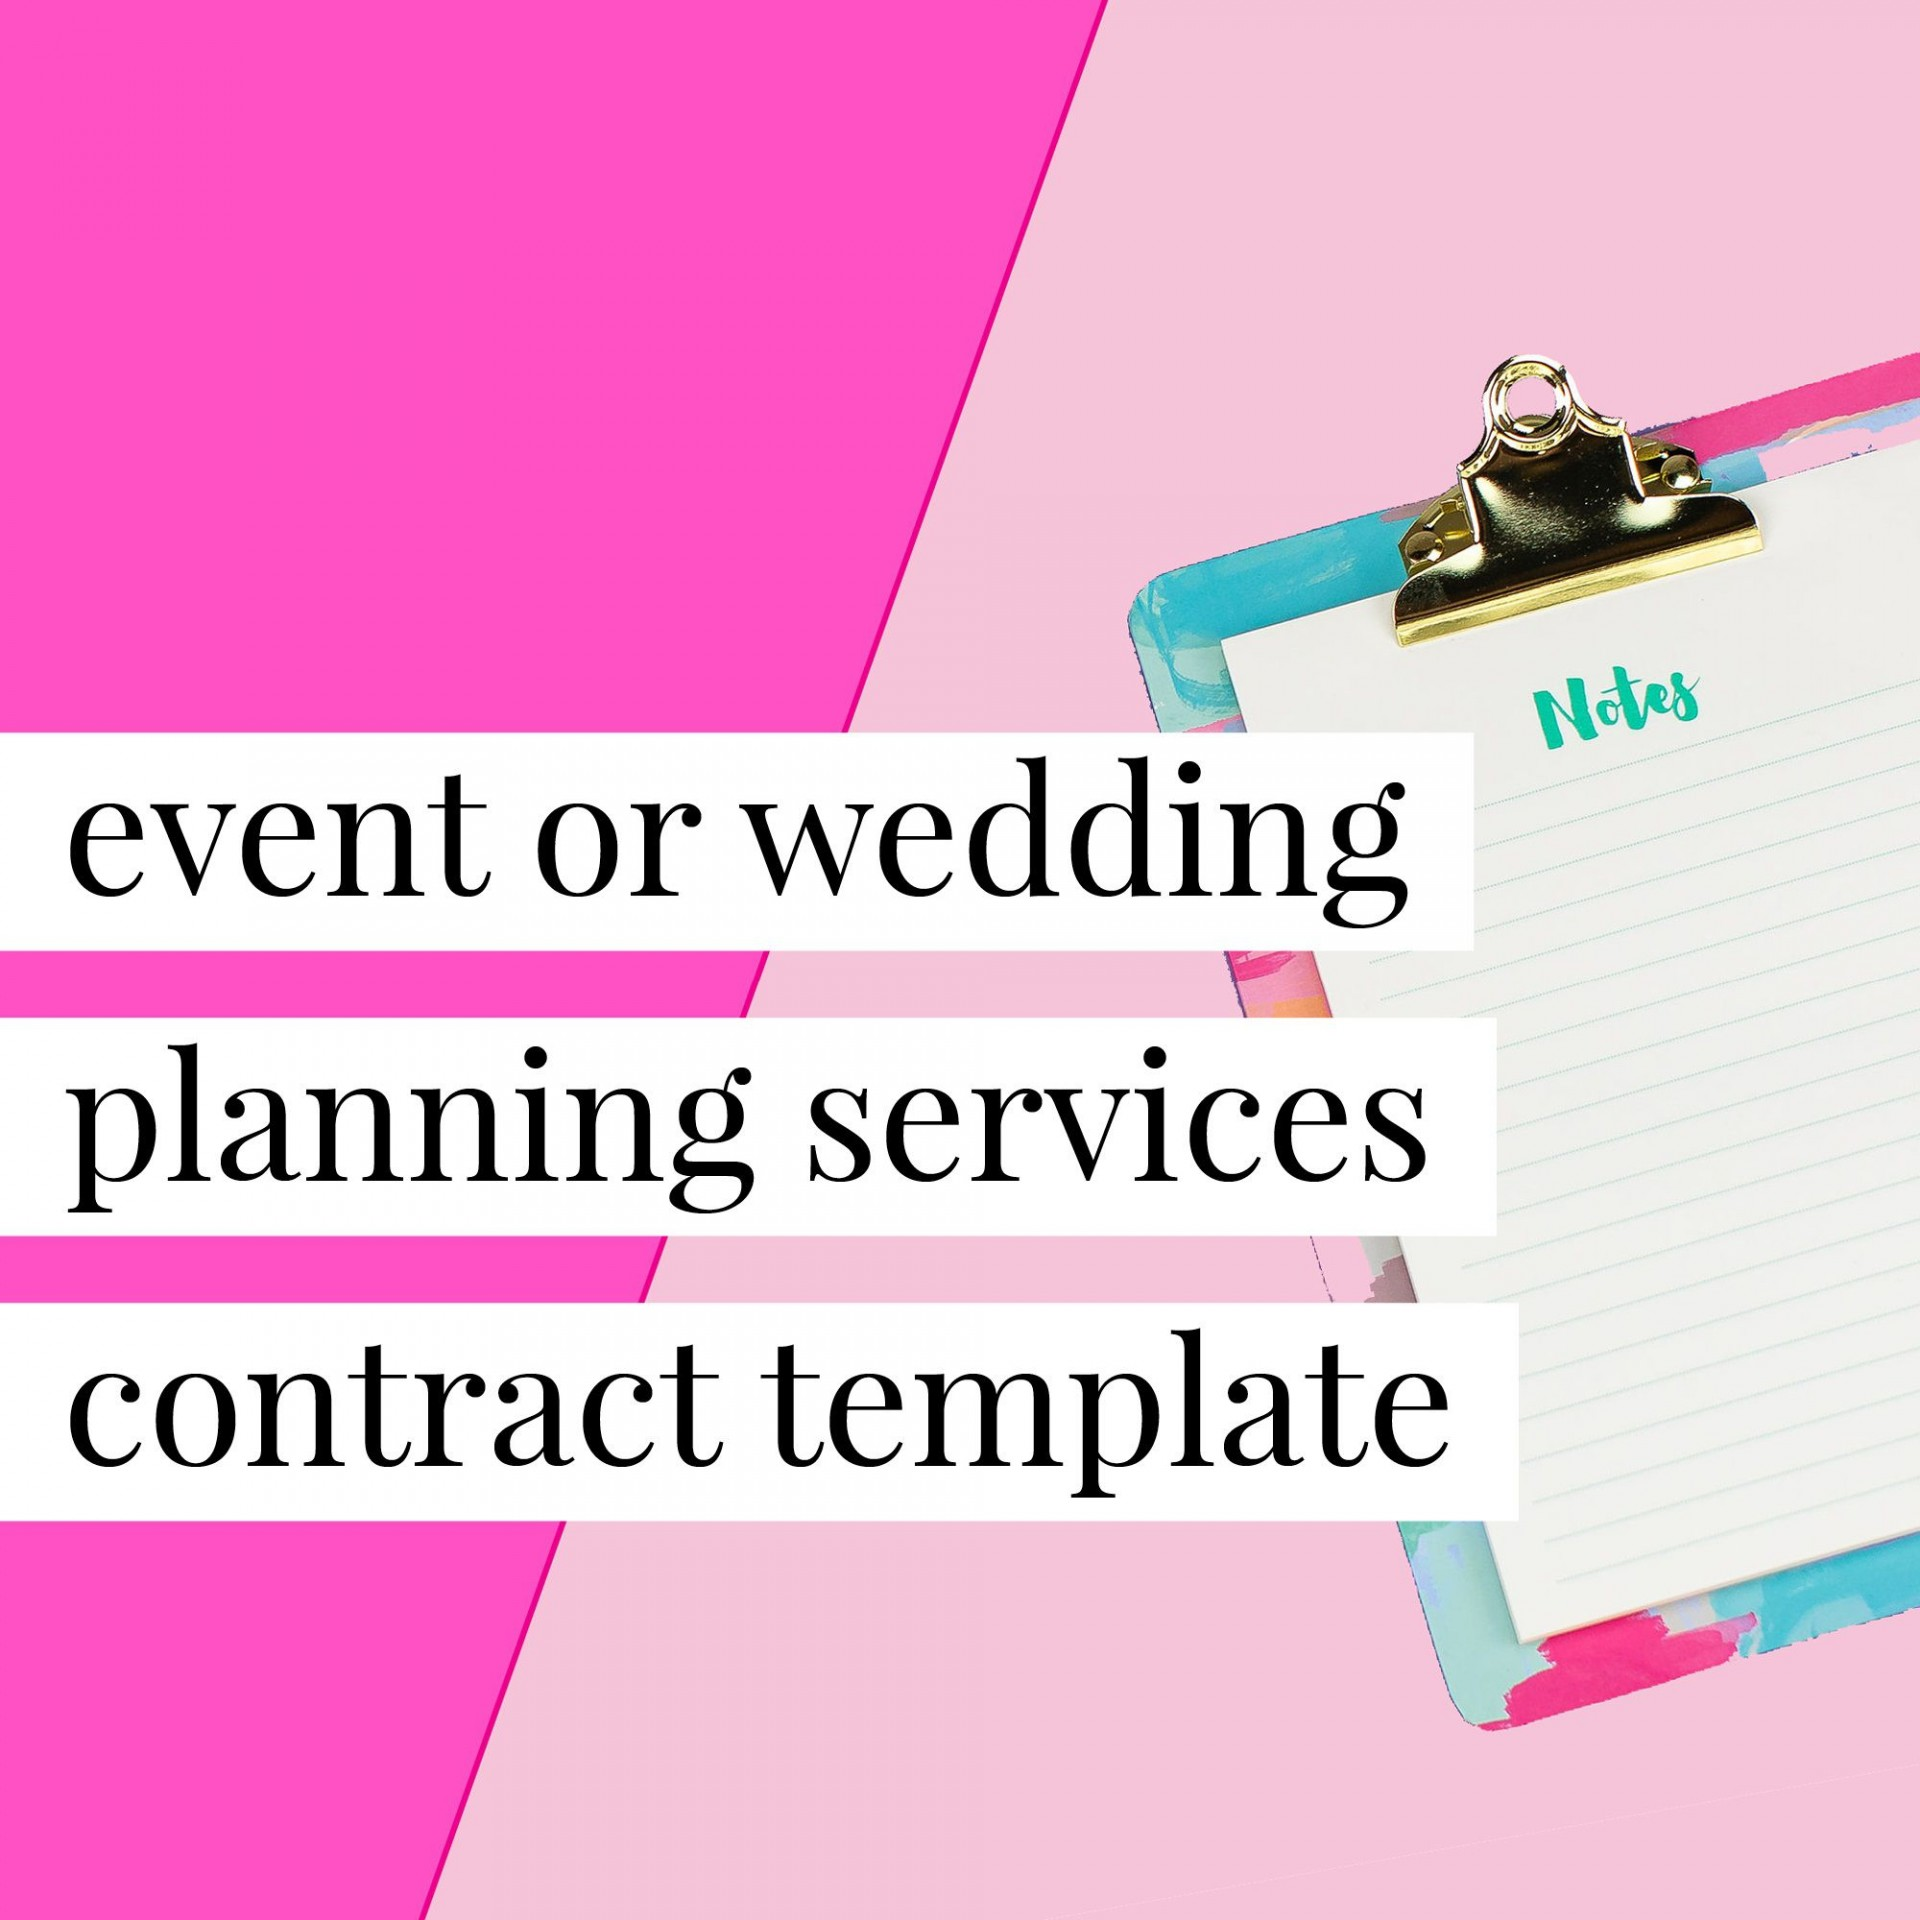 008 Beautiful Event Planner Contract Template Photo  Free Download Planning1920